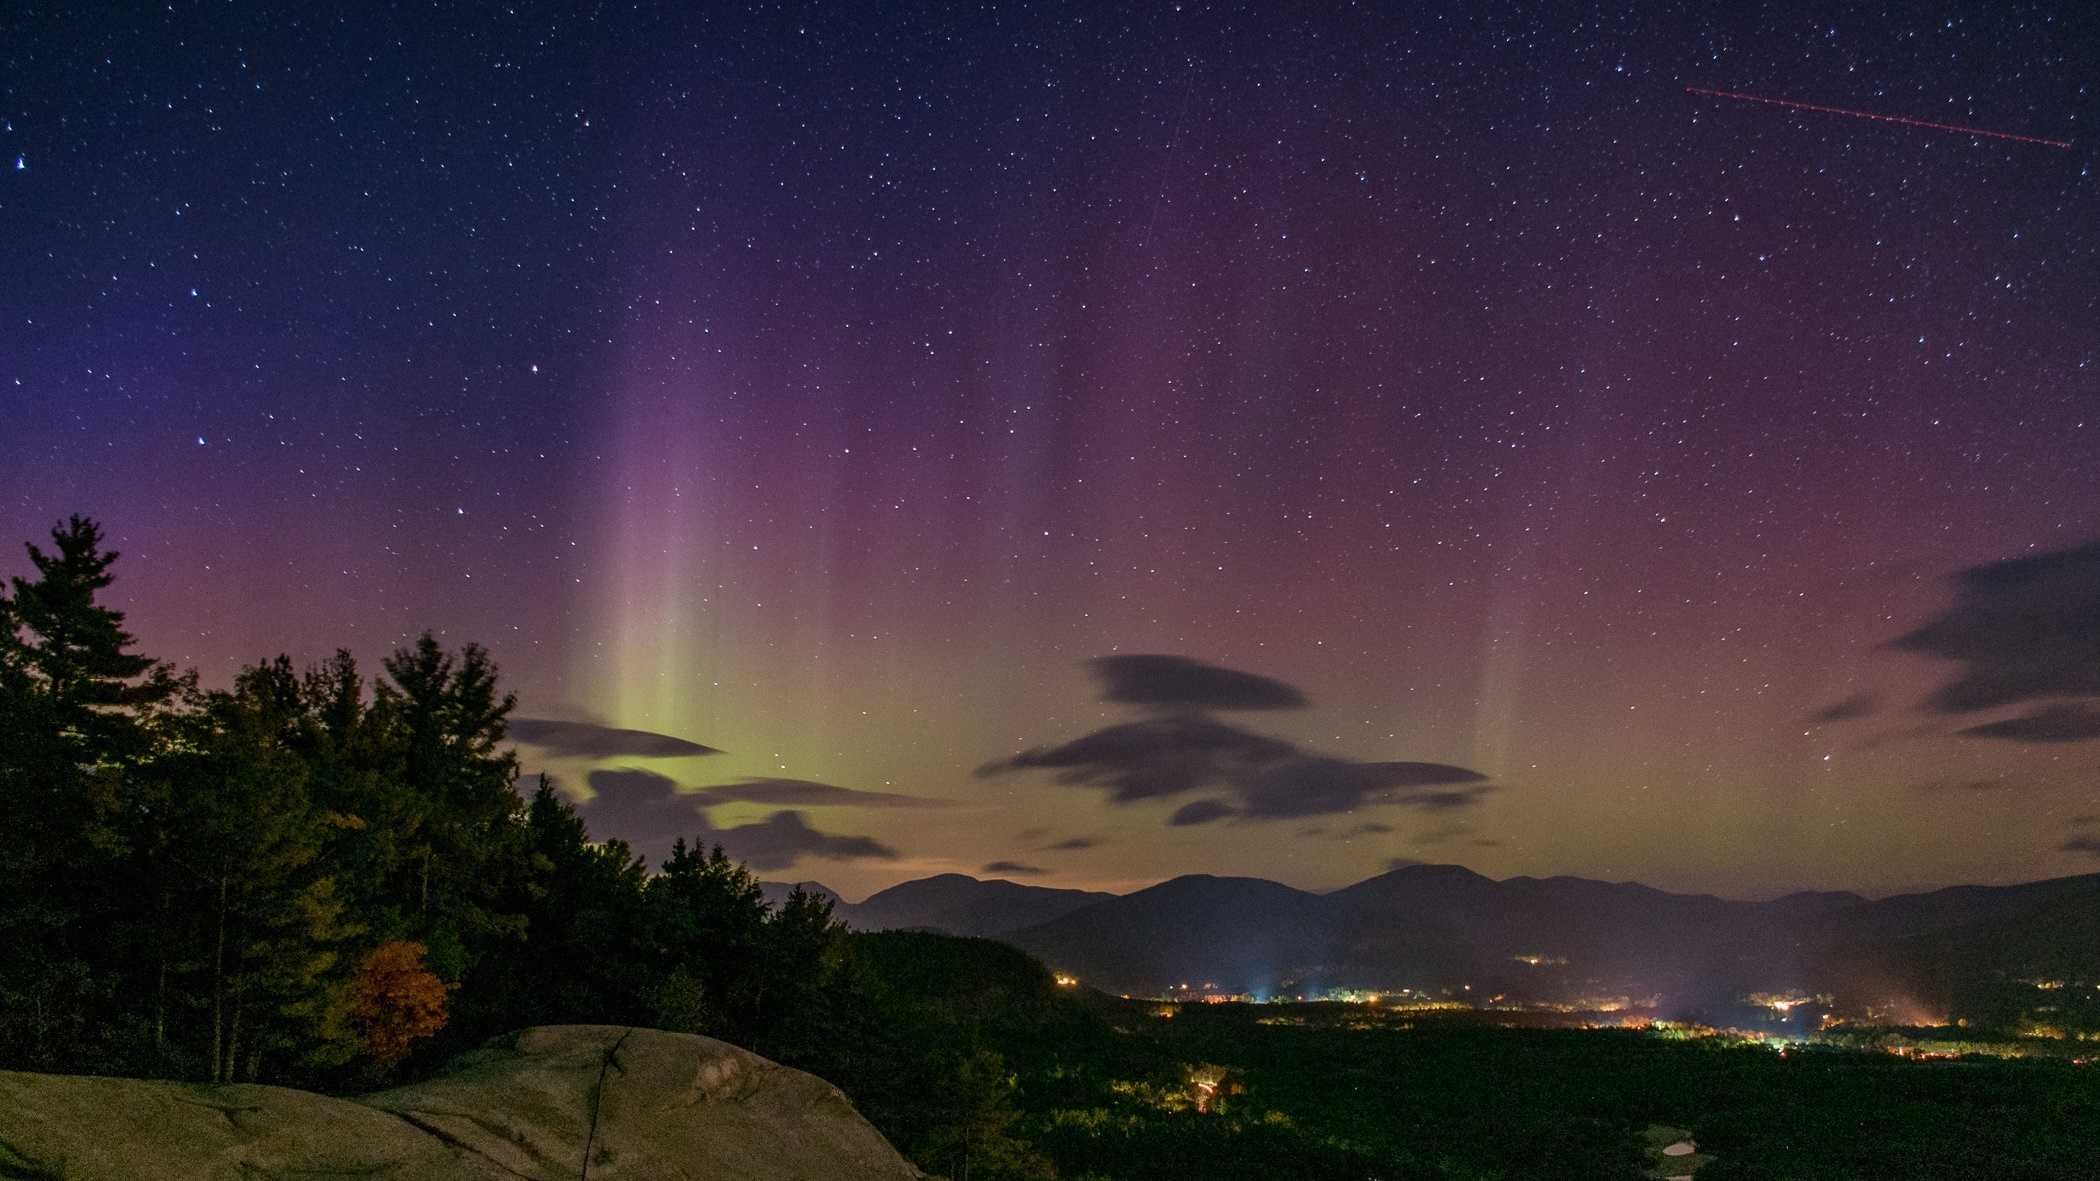 Dan Houde of Wiseguy Creative Photography captured some amazing photos on Oct. 7 of the northern lights over Mt Washington Valley with Cathedral Ledge in the foreground.